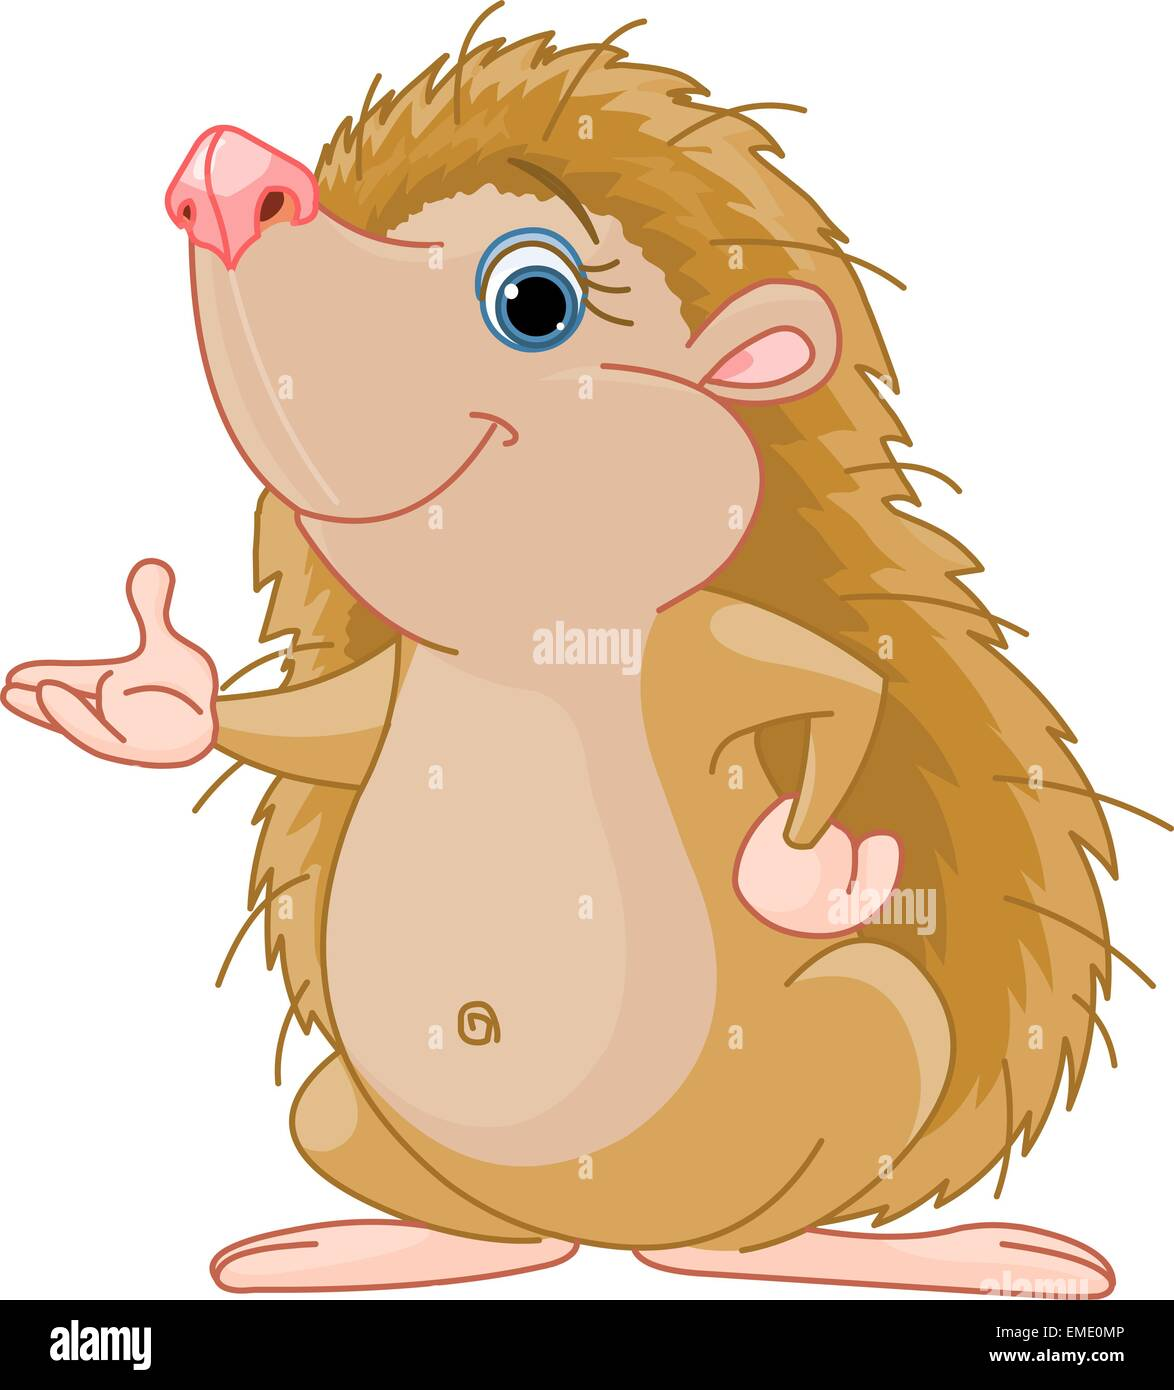 Hedgehog presenting - Stock Image